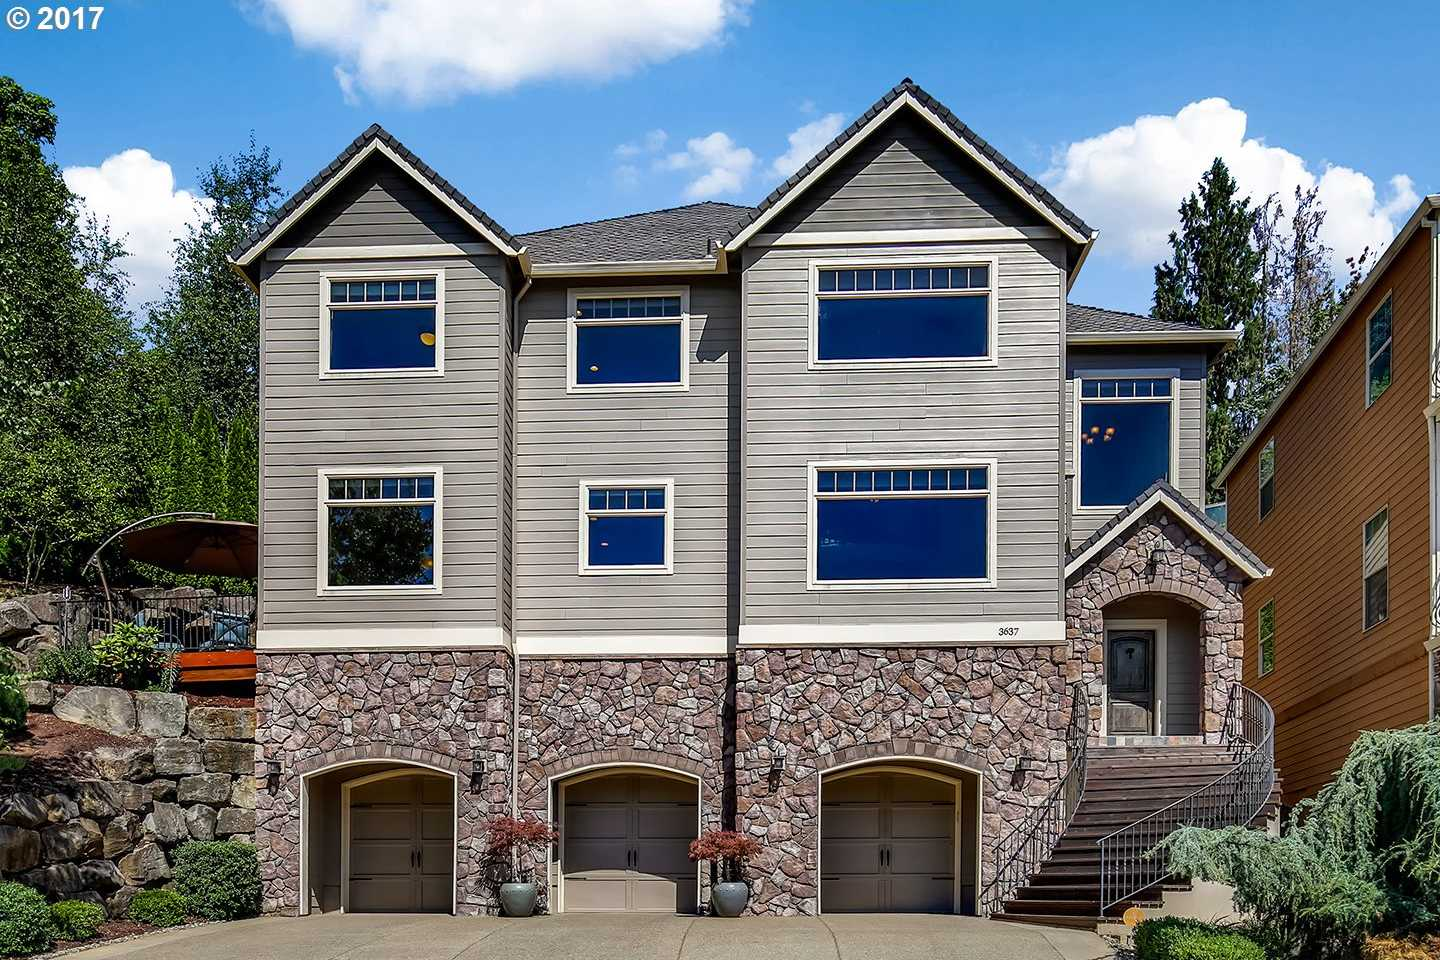 $554,000 - 4Br/4Ba -  for Sale in West Linn